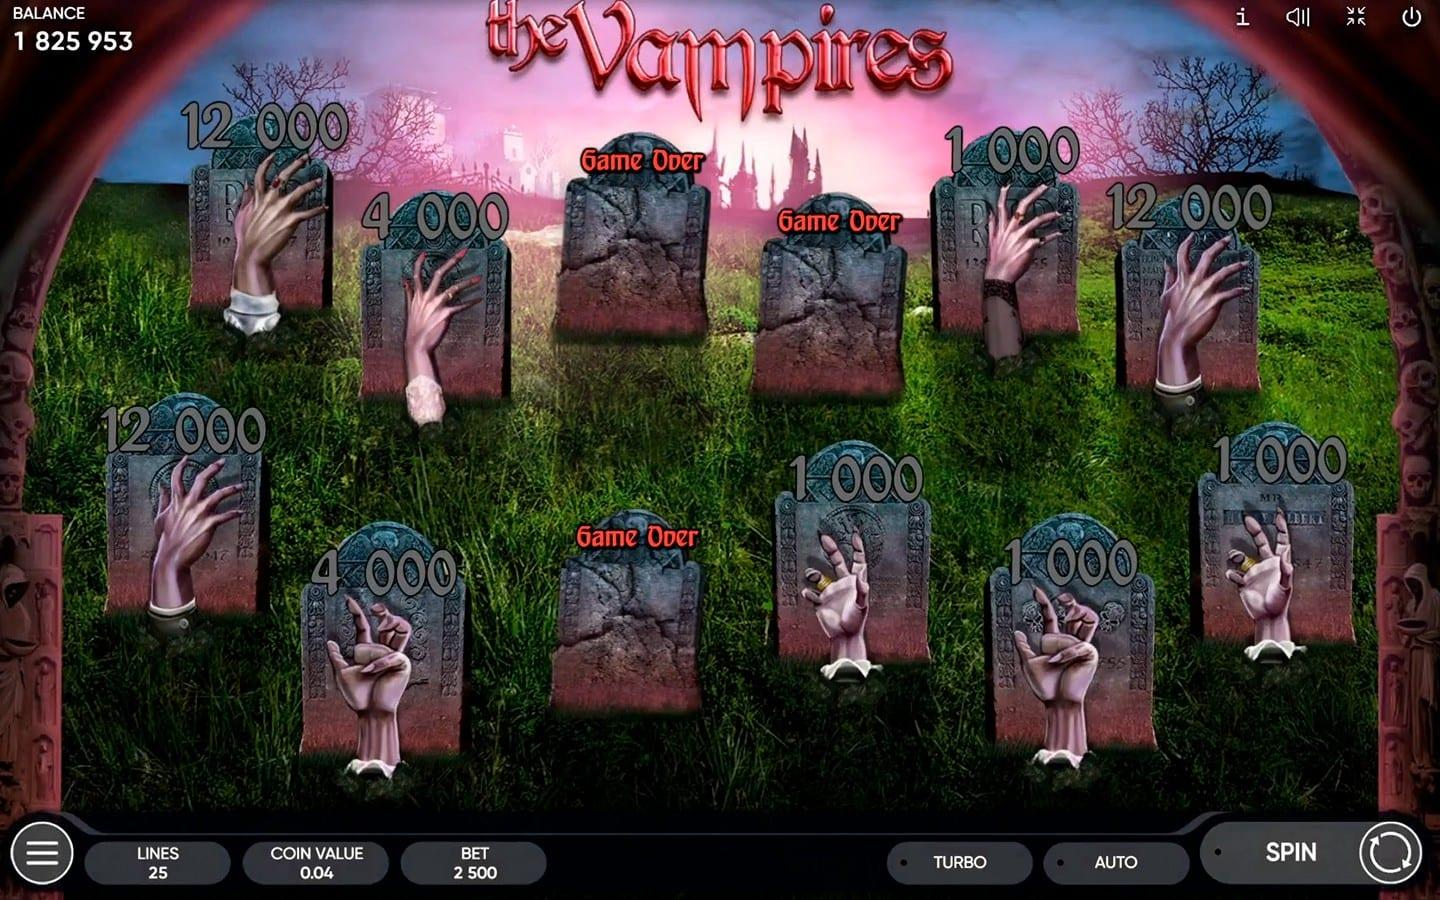 The Vampires Symbols: Here is the exciting part of The Vampire Slot Machine game. The Wild symbol is represented by a vampire bat.